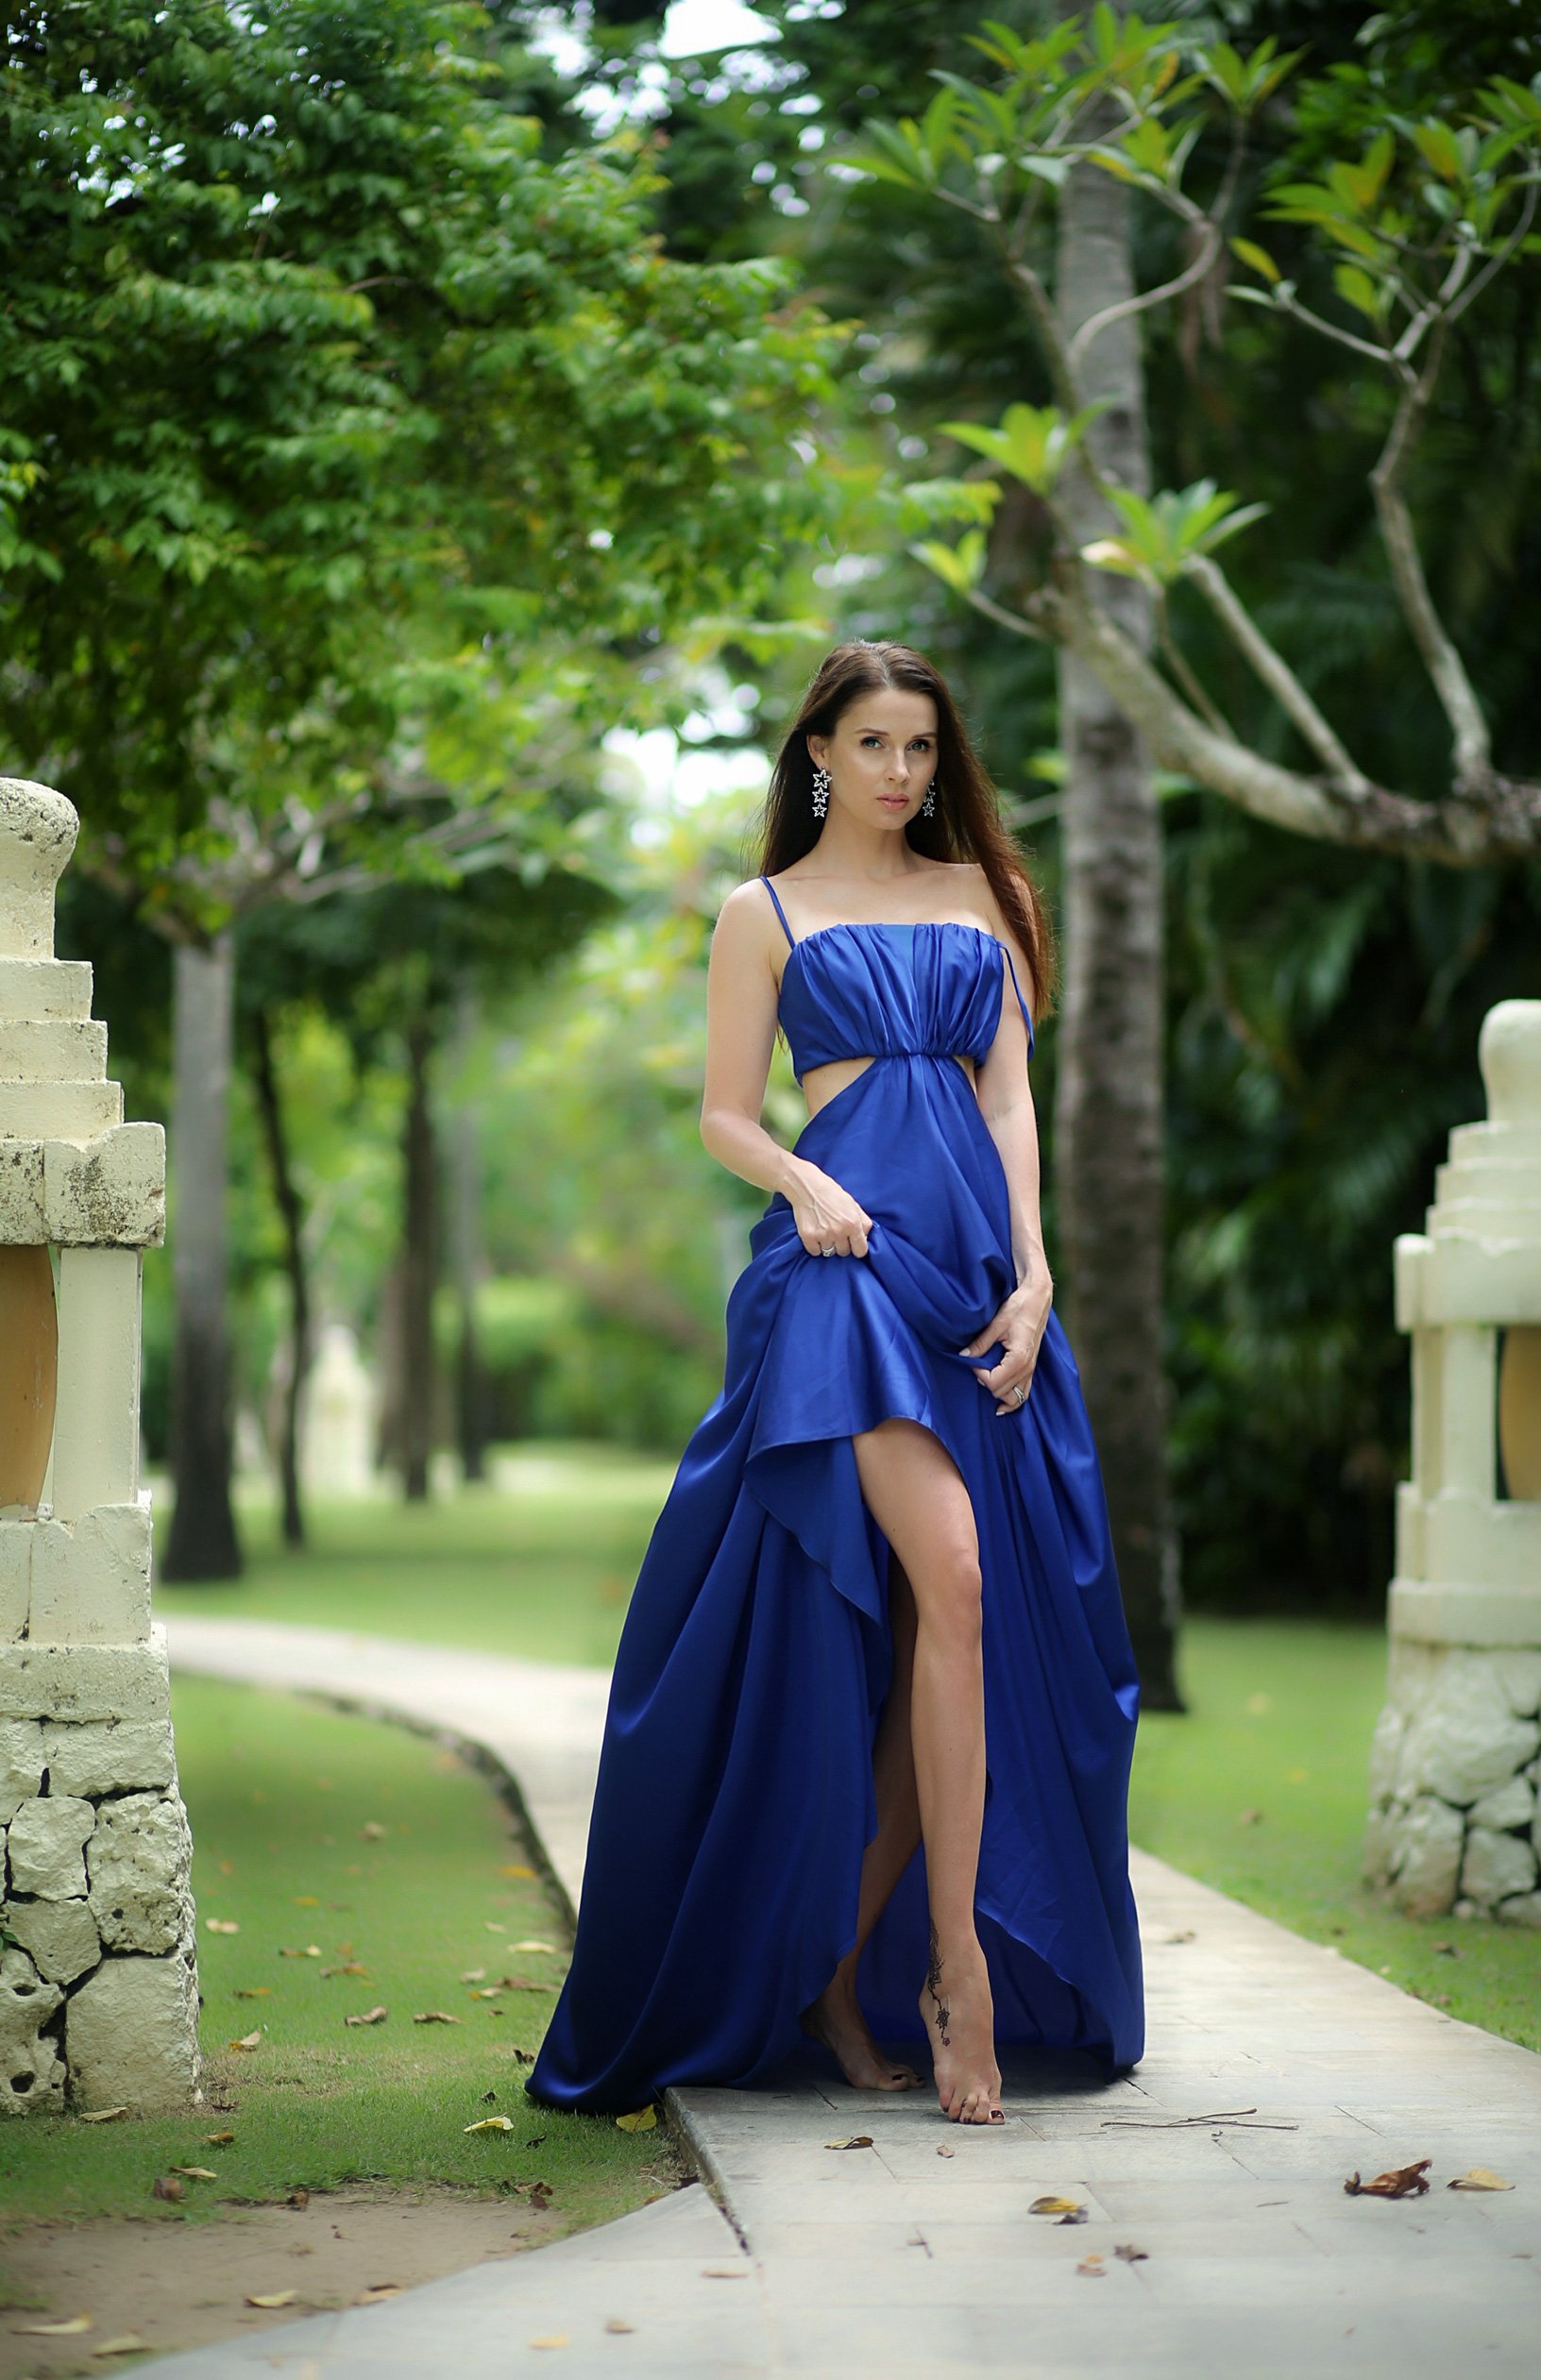 beauty girl bali beautiful dress , ЛЕВАН ТАВАДЗЕ